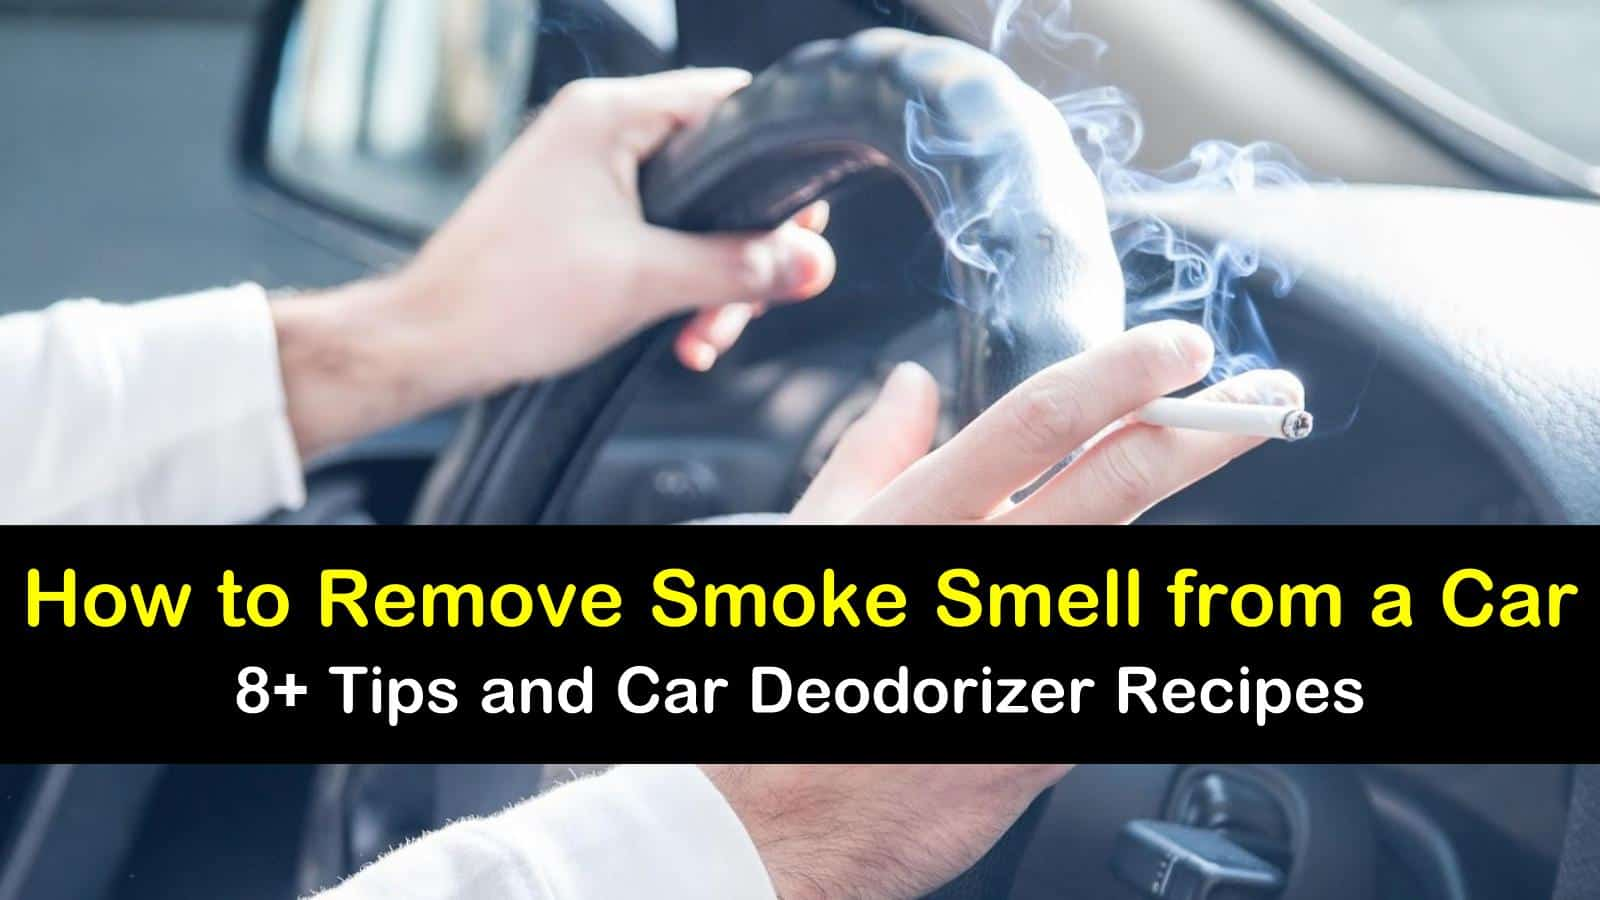 how to remove smoke smell from a car titleimg1